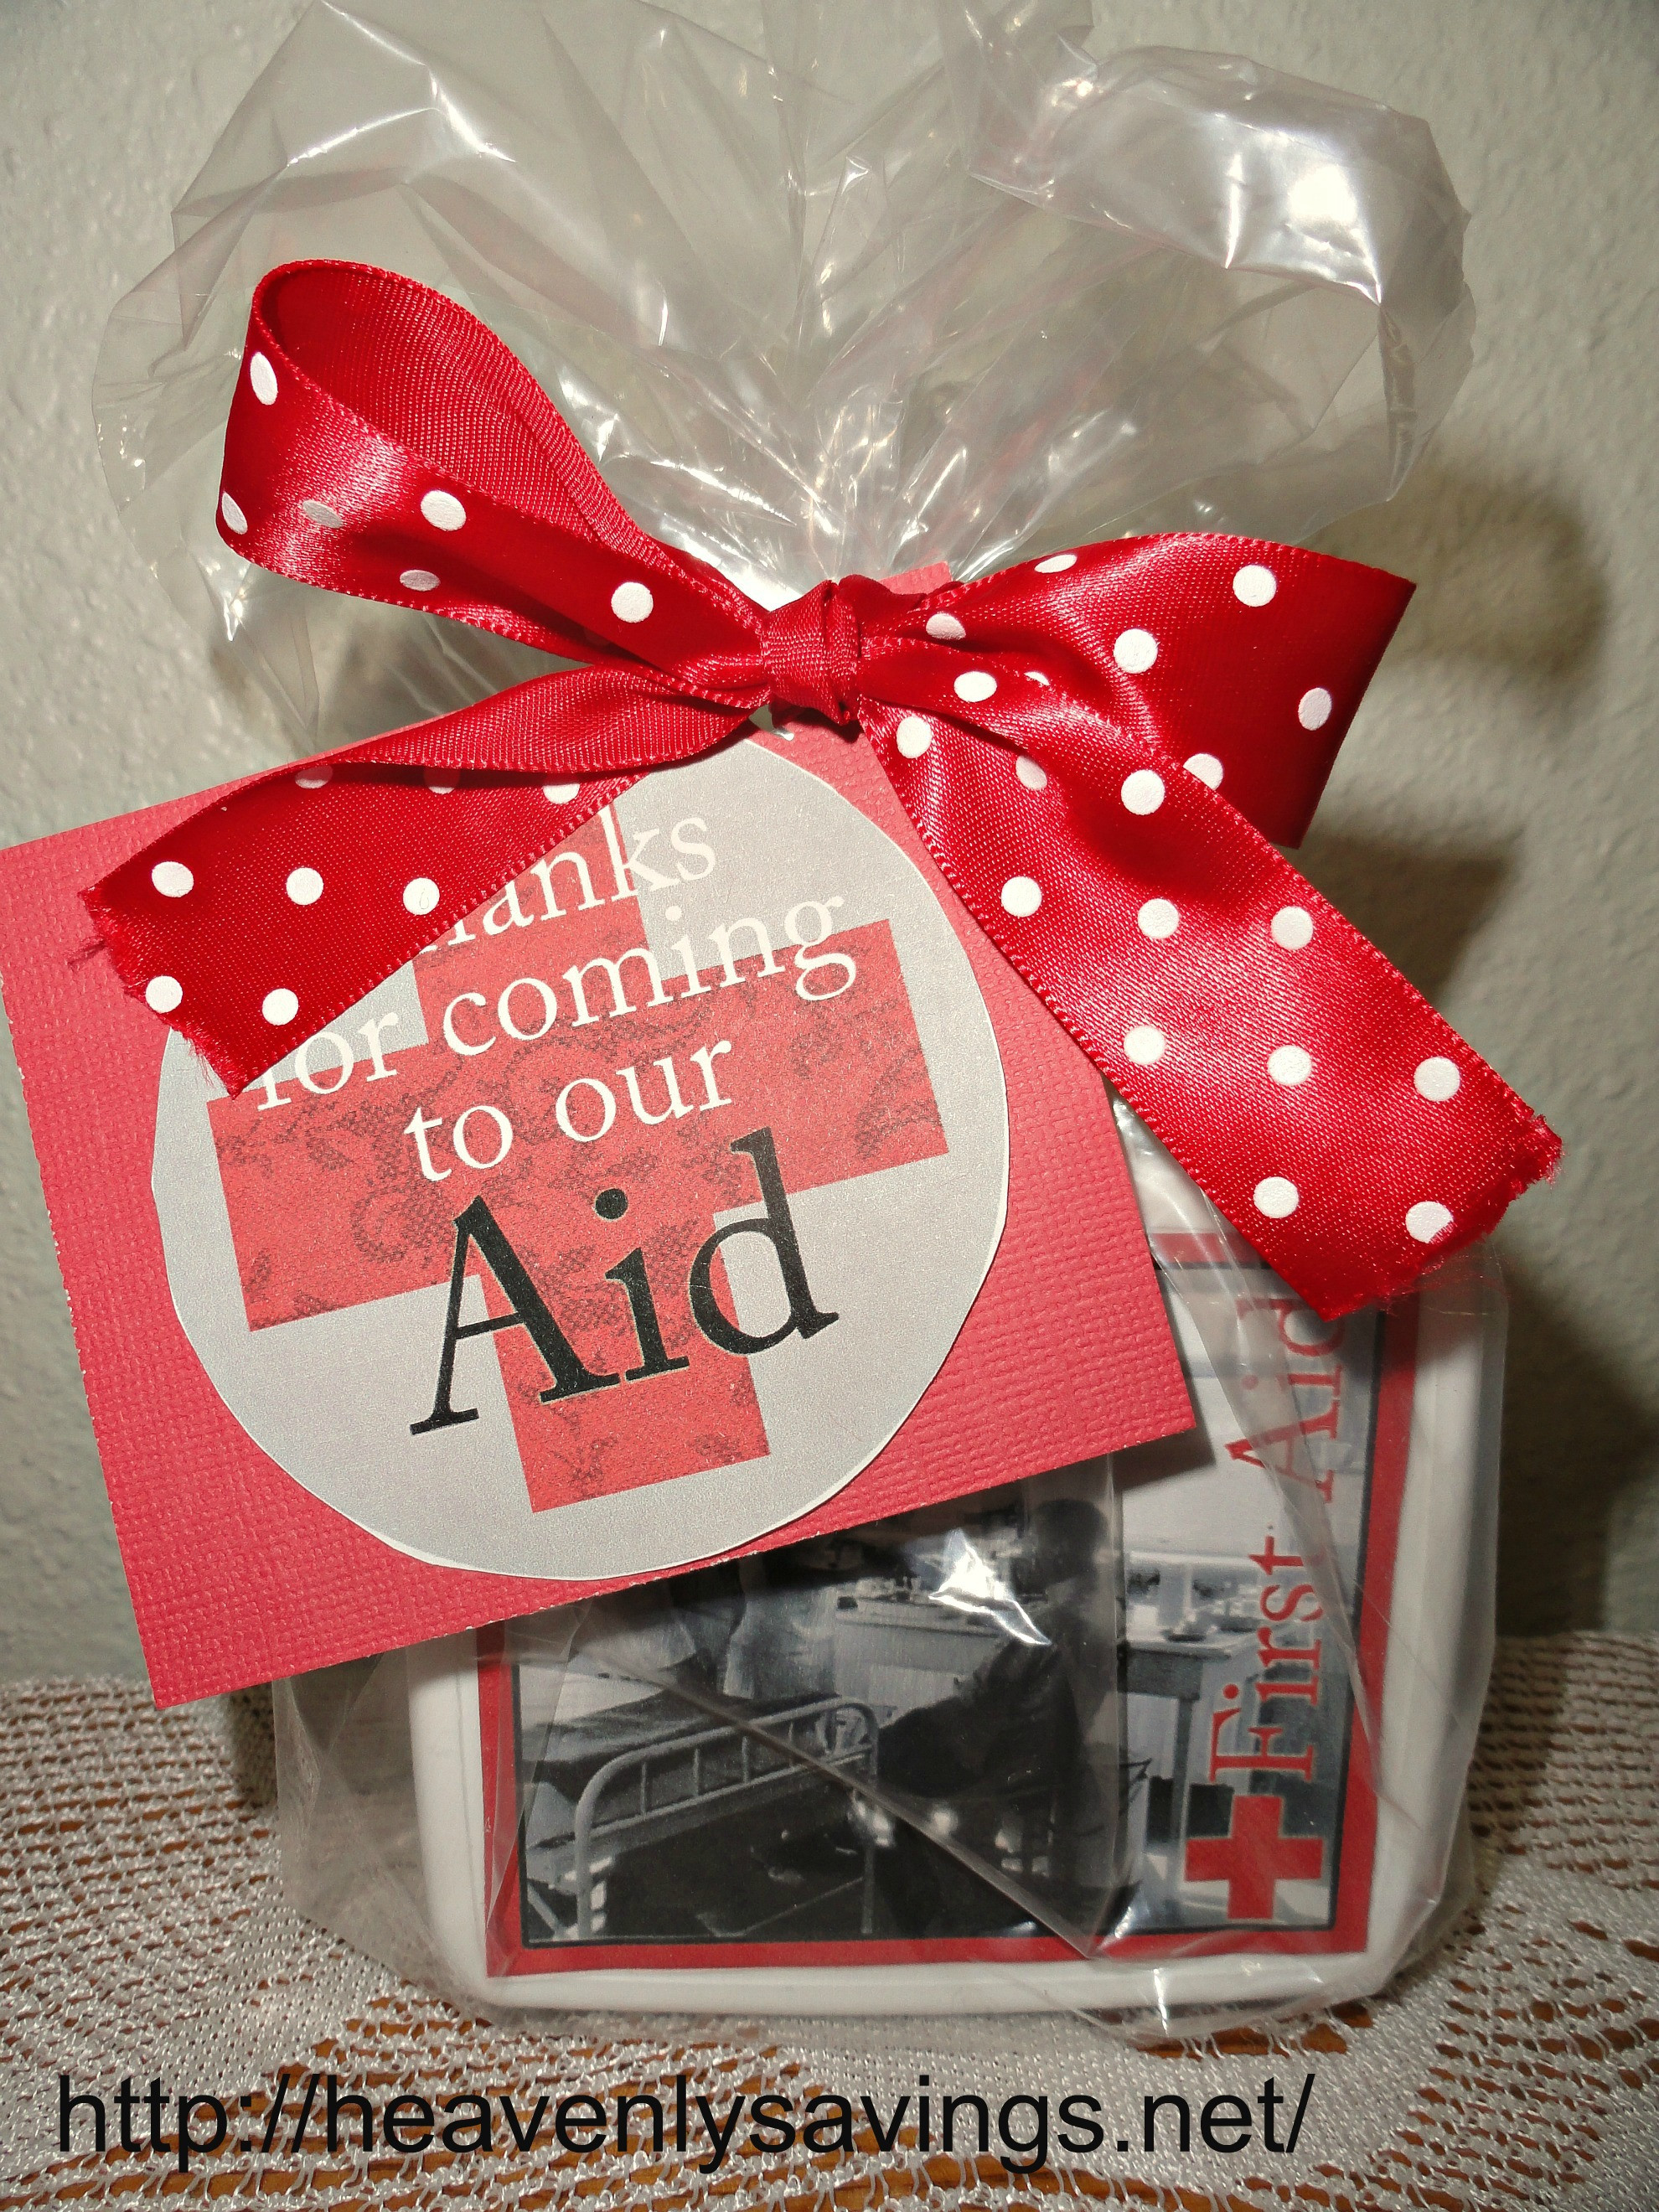 Inexpensive Thank You Gift Ideas  Cheap and Easy Thank You Gift